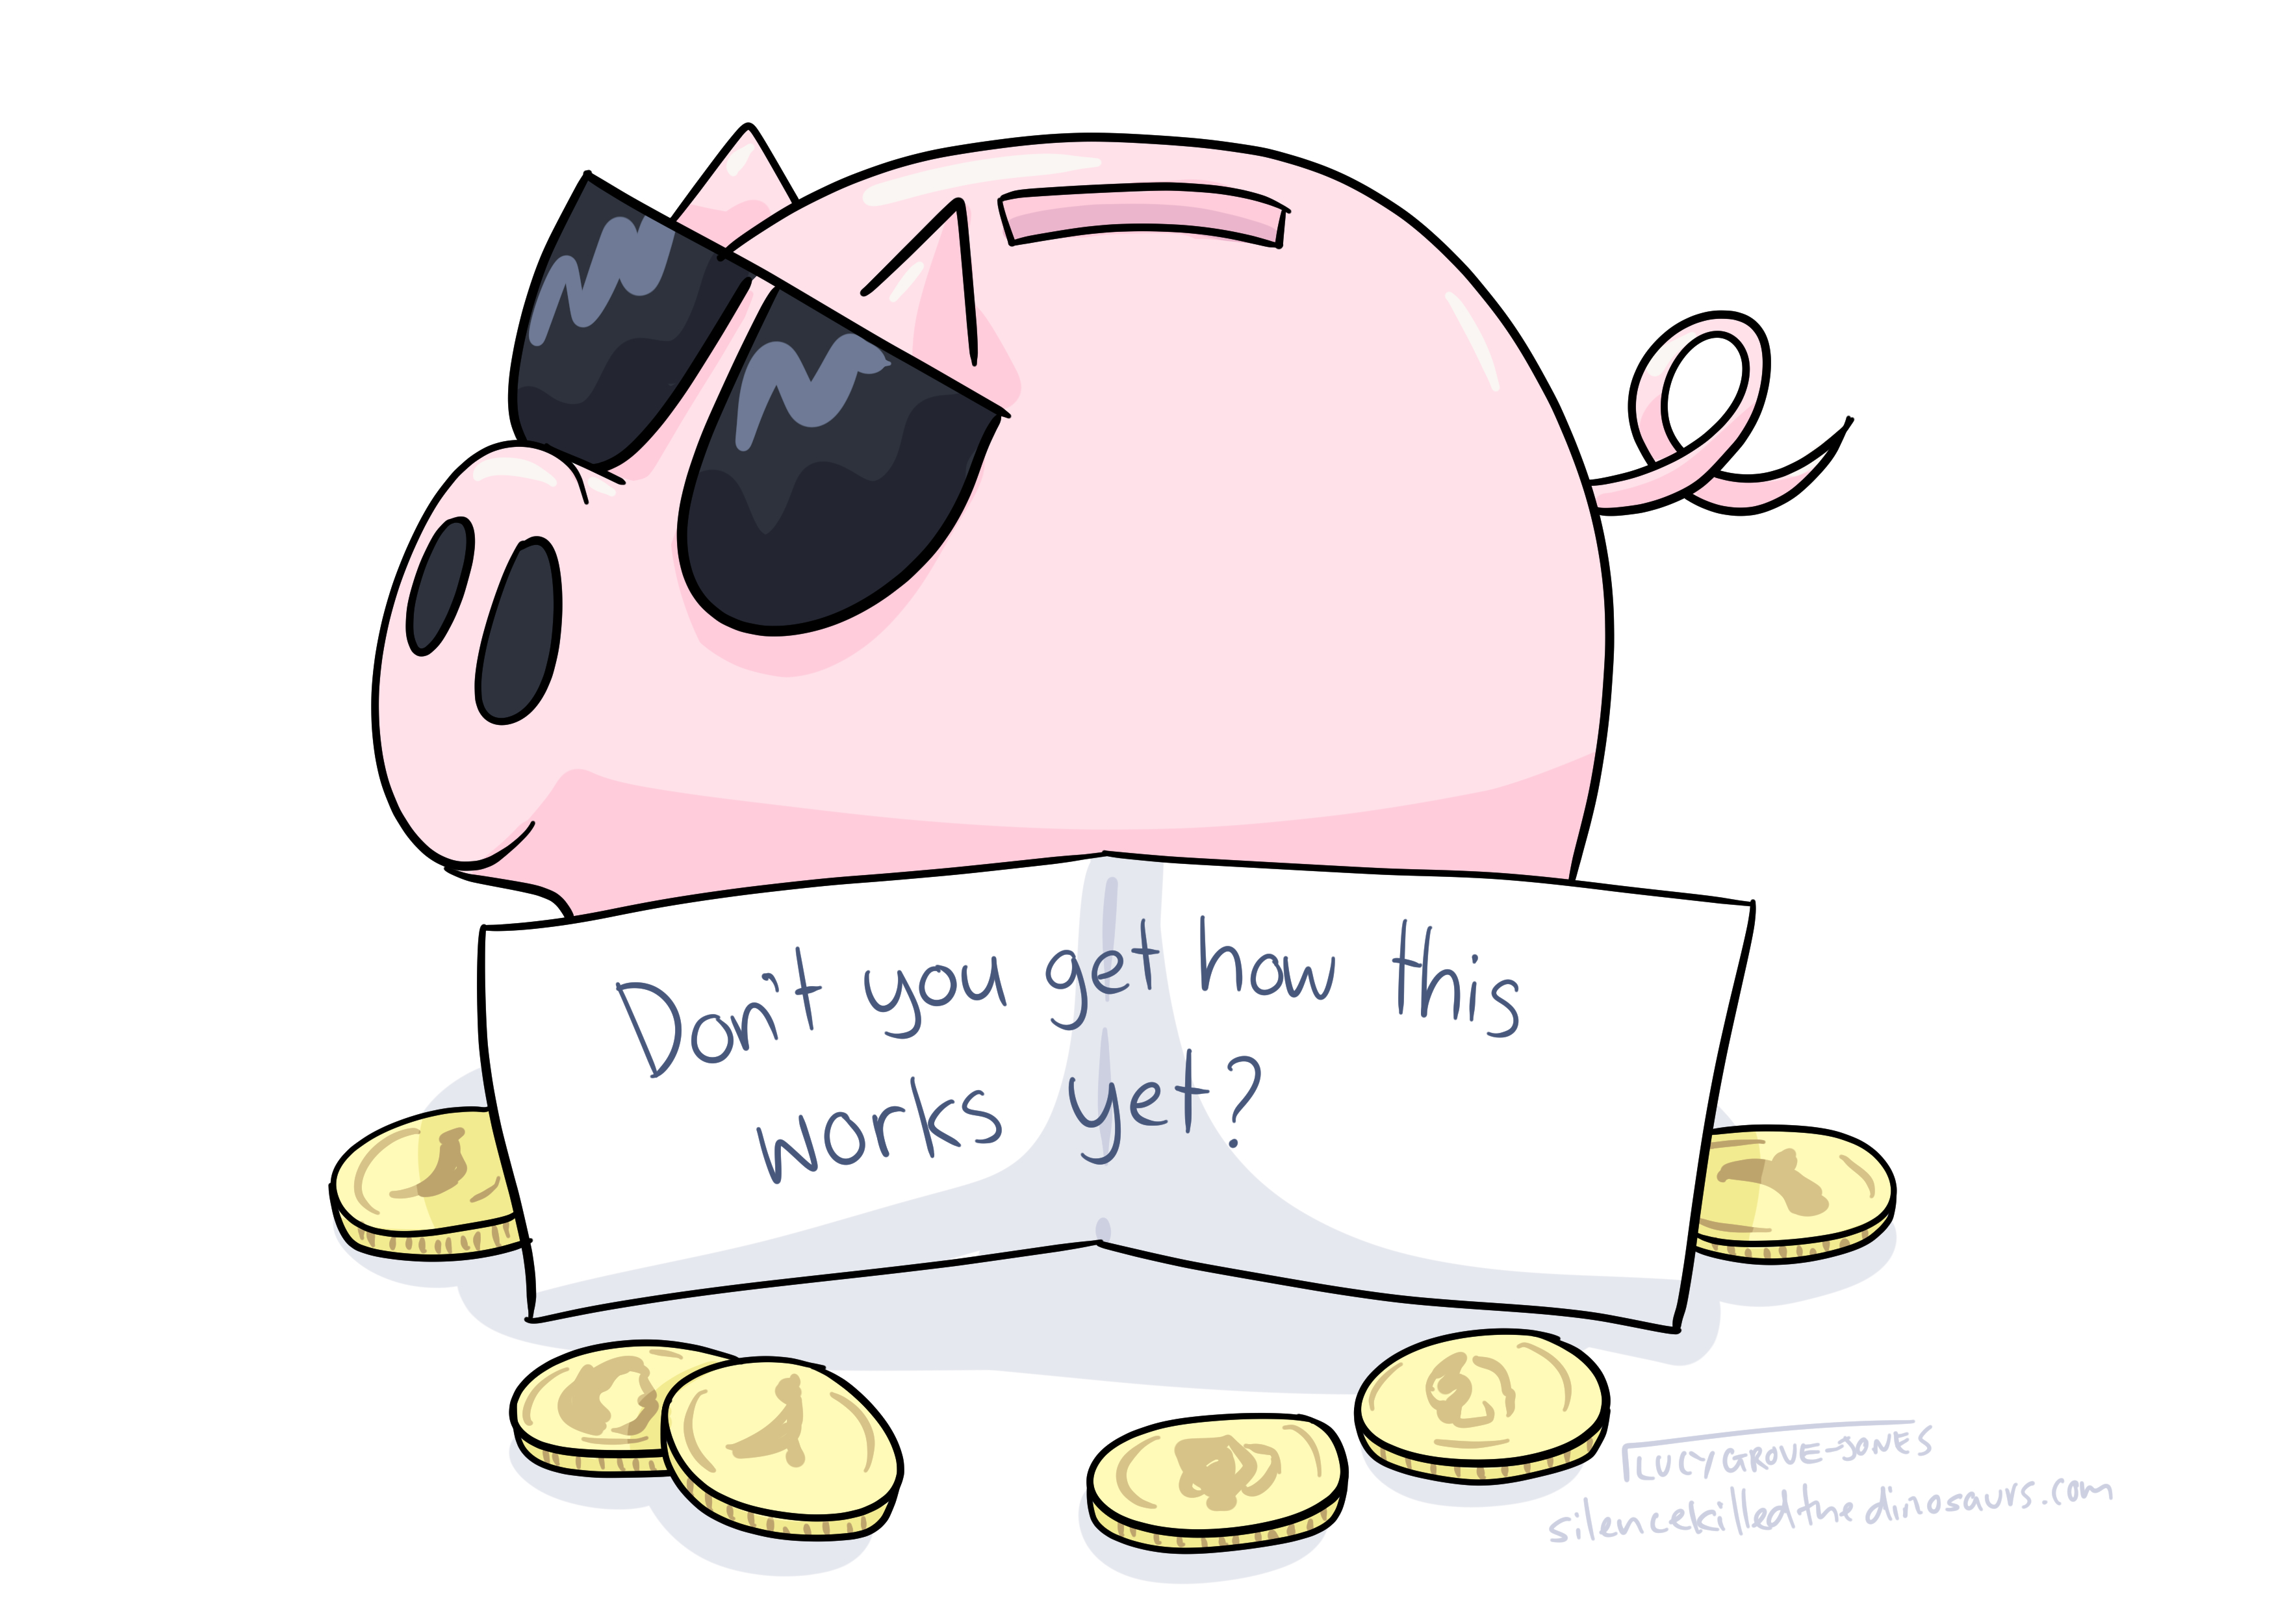 A piggy bank wearing sunglasses with scattered coins. There is a note that reads: 'Don't you get how this works yet?'